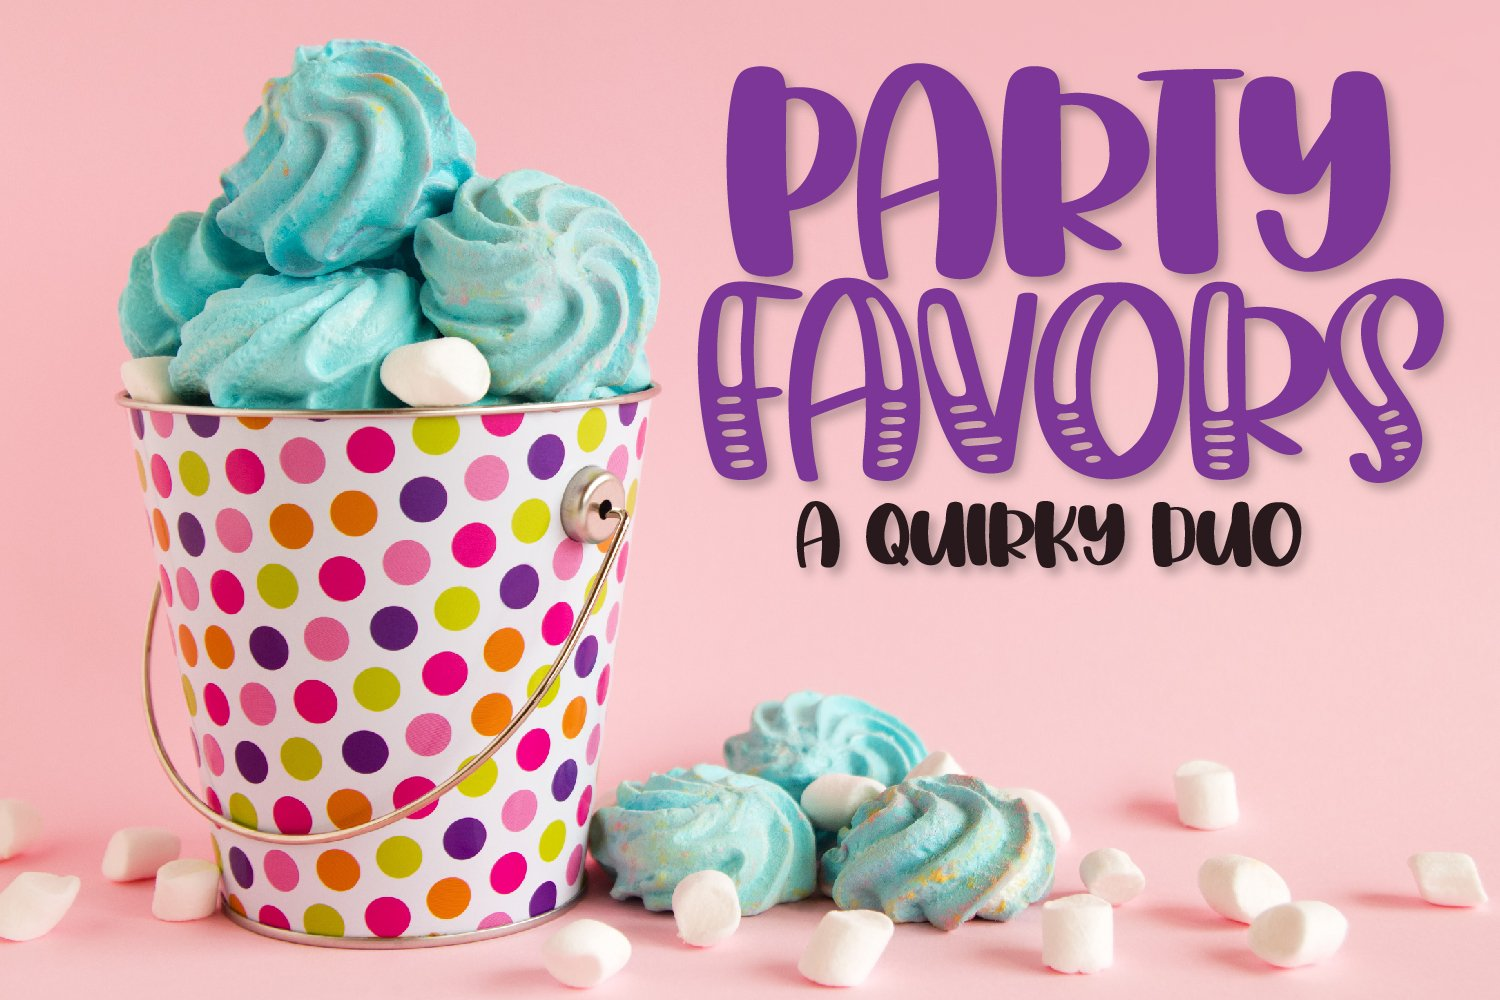 Party Favors - A Quirky Duo! example image 1